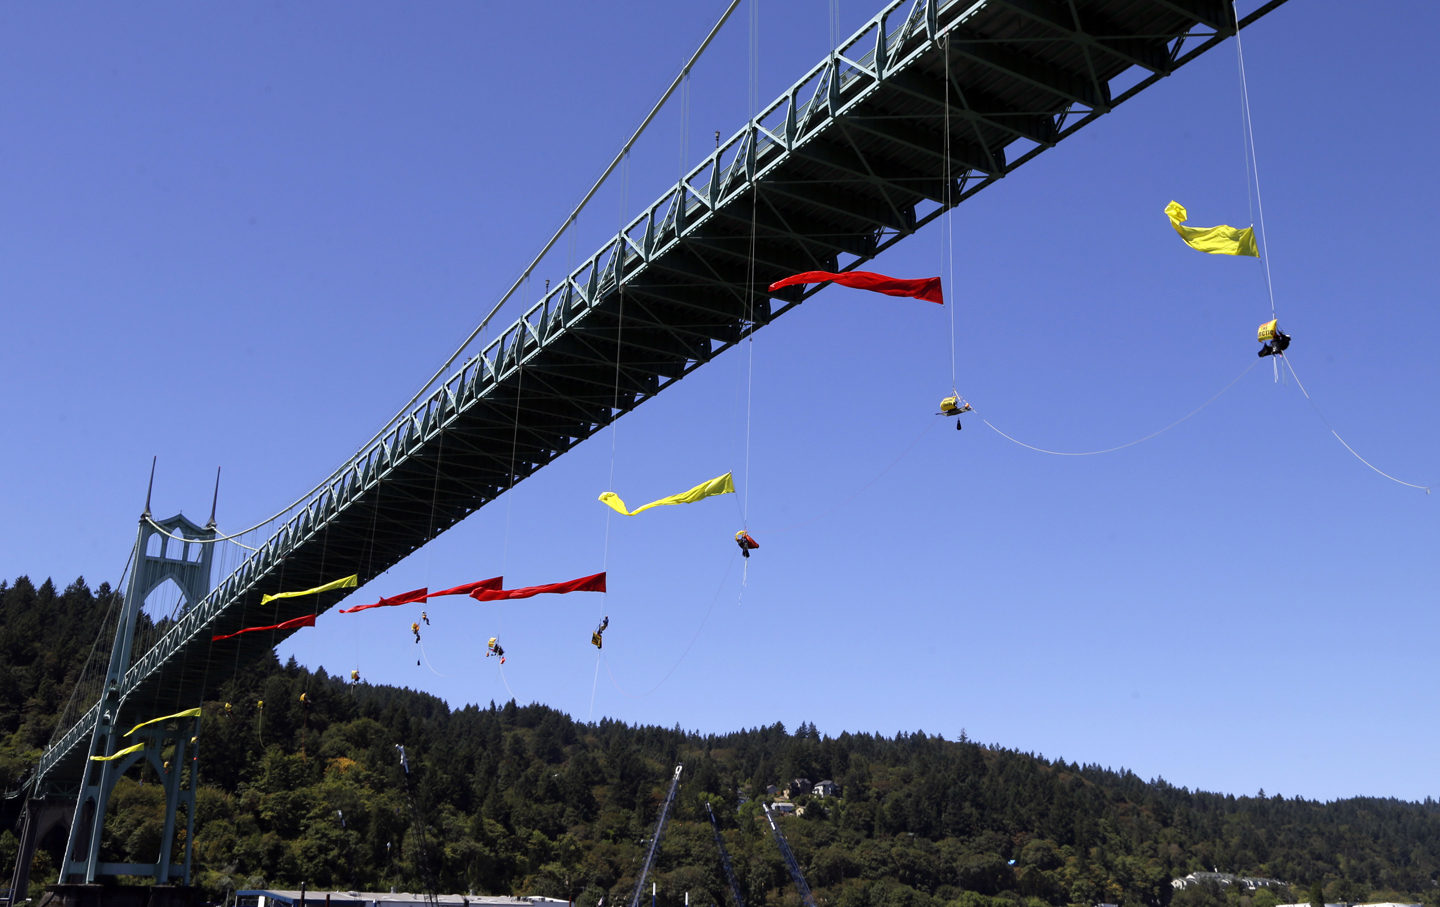 Activists unfurl colored banners while hanging from the St. Johns bridge in Portland, Ore., Wednesday, July 29, 2015, to protest  the departure of Royal Dutch Shell PLC icebreaker Fennica, which is in Portland for repairs. The icebreaker is a vital part of Shell's exploration and spill-response plan off Alaska's northwest coast. Greenpeace officials say  the activists have enough water and food to last for days, and can hoist themselves to allow other marine traffic to pass. (AP Photo/Don Ryan)